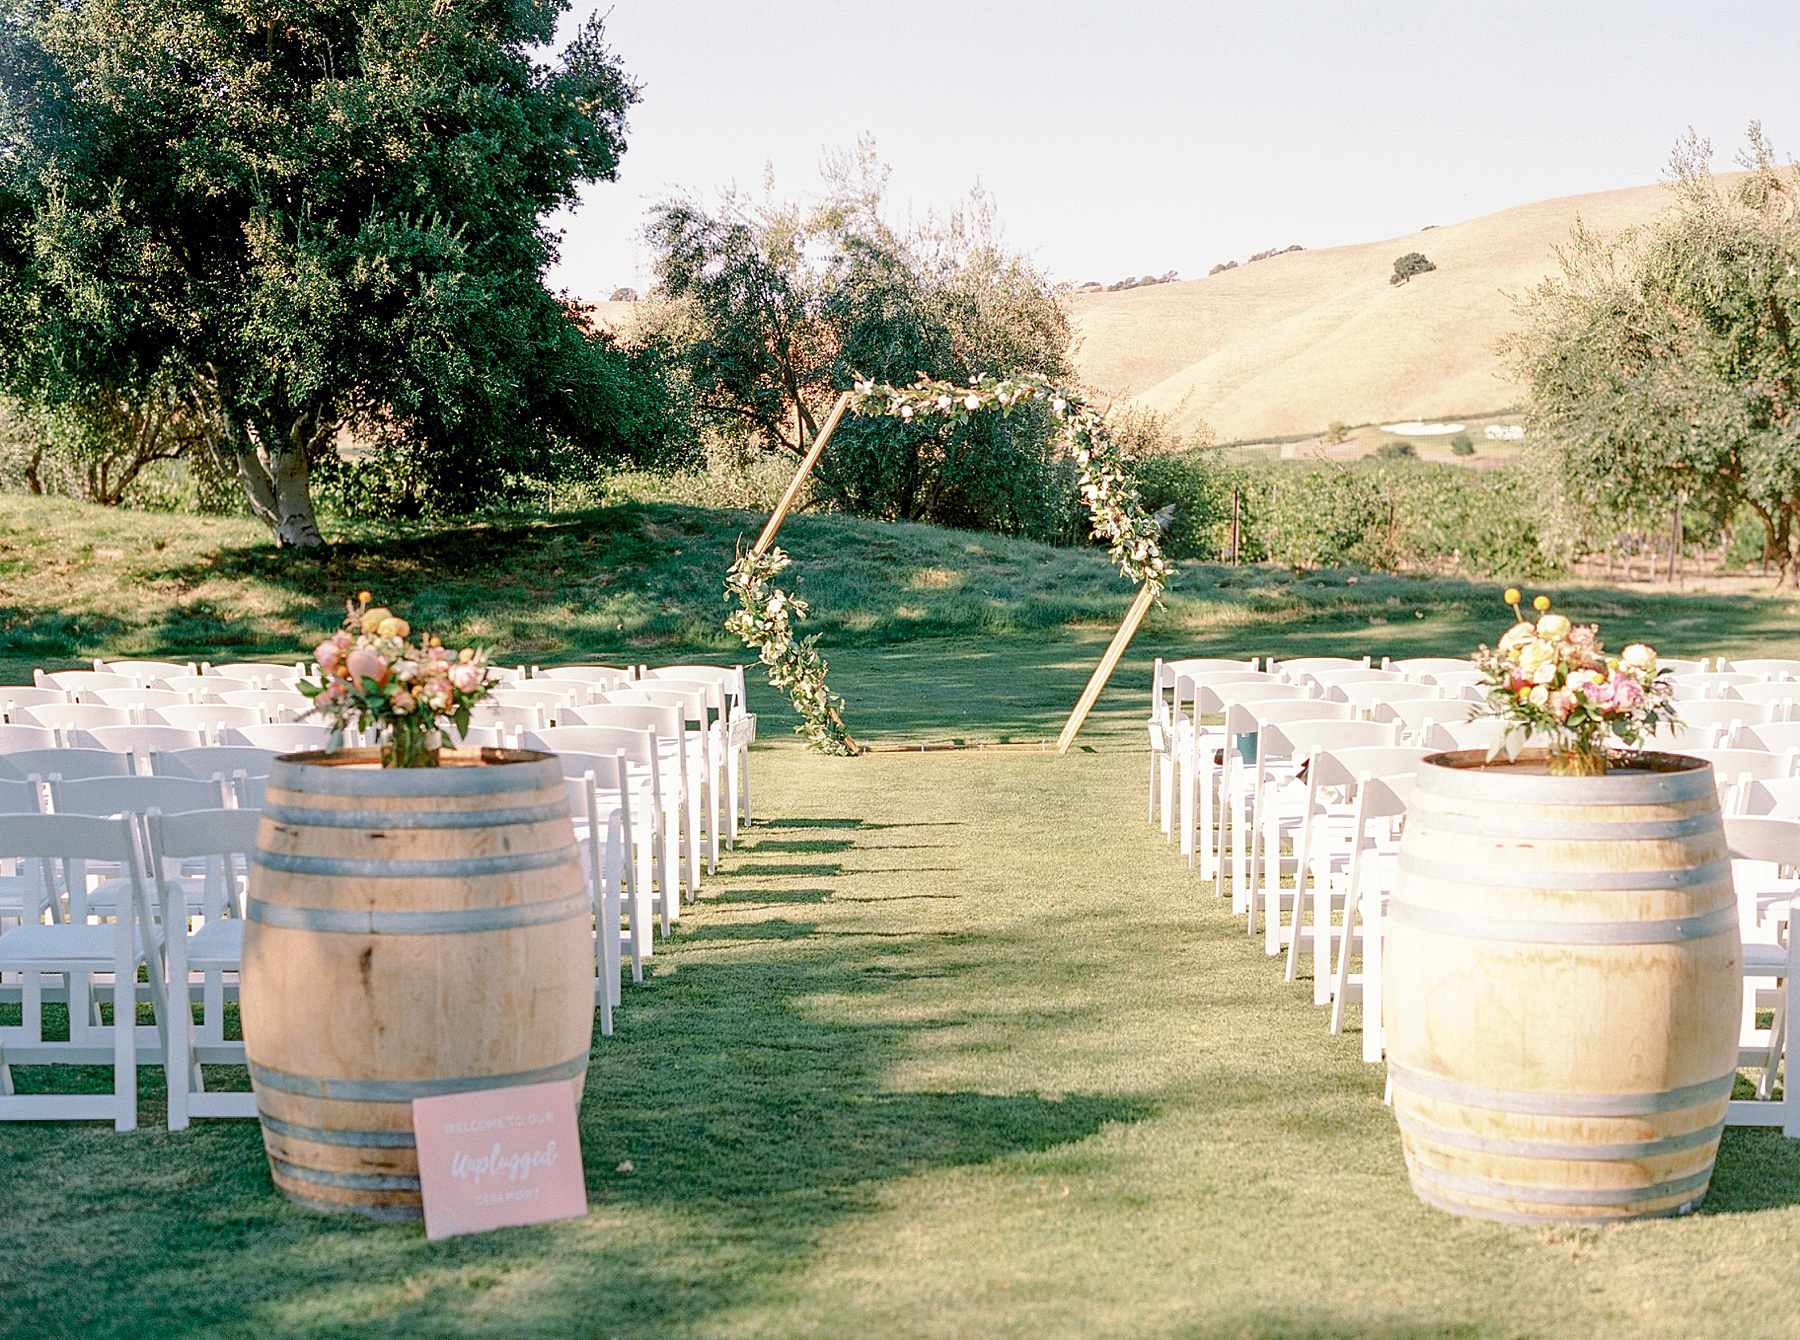 Wente Wedding with A Tropical Color Palette - Ashley & Mike - Featured on Inspired by This - Ashley Baumgartner_0016.jpg